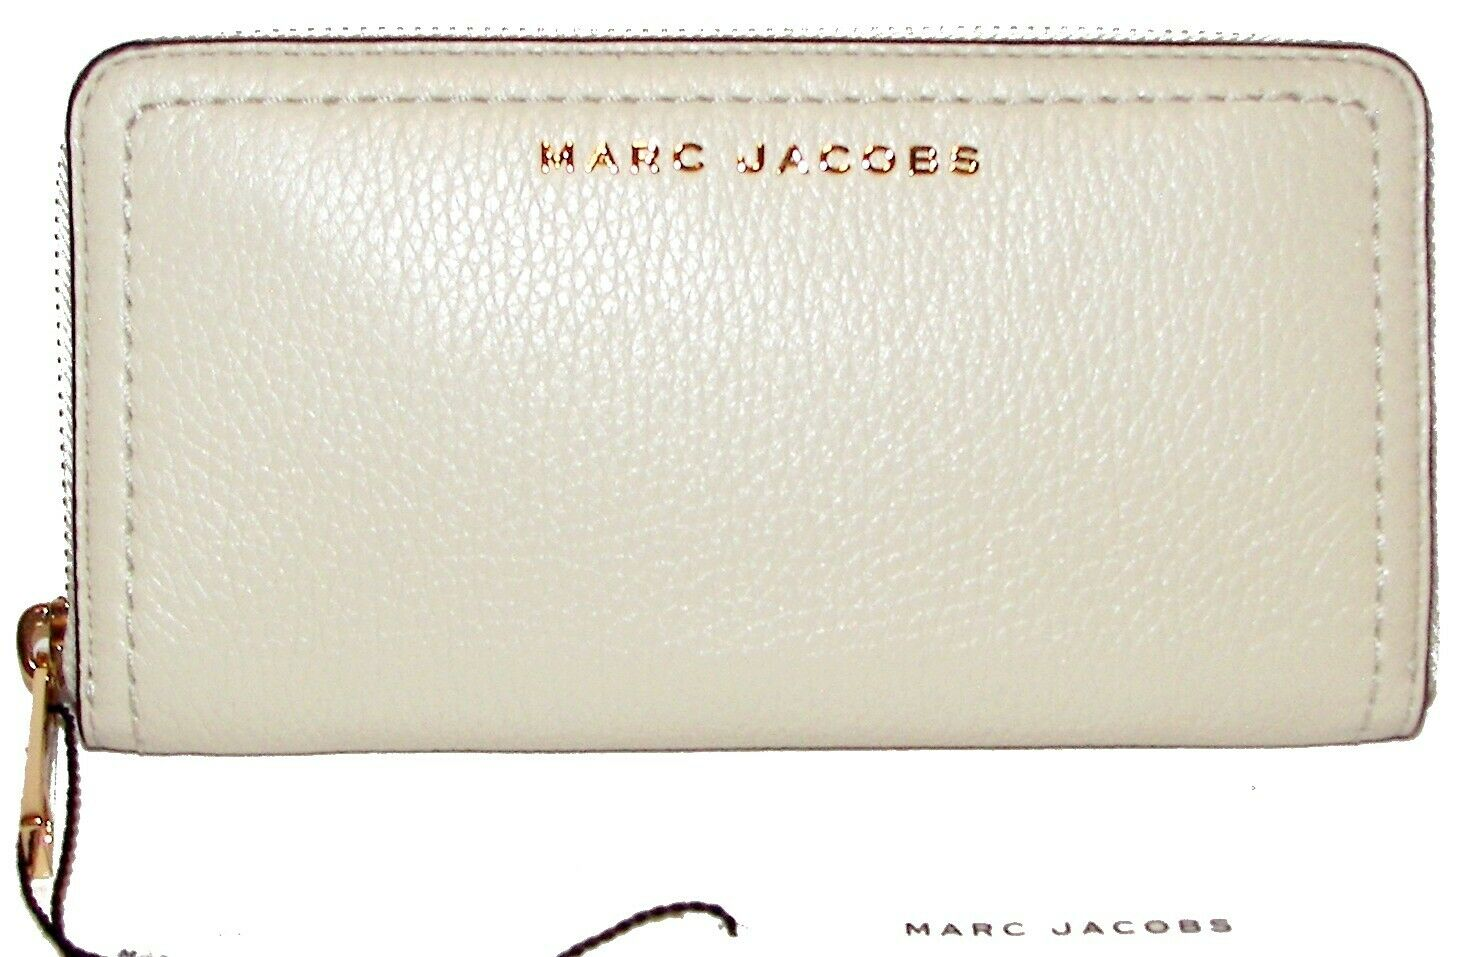 MARC JACOBS Marshmallow Leather Zip-Around Clutch Wallet NWT